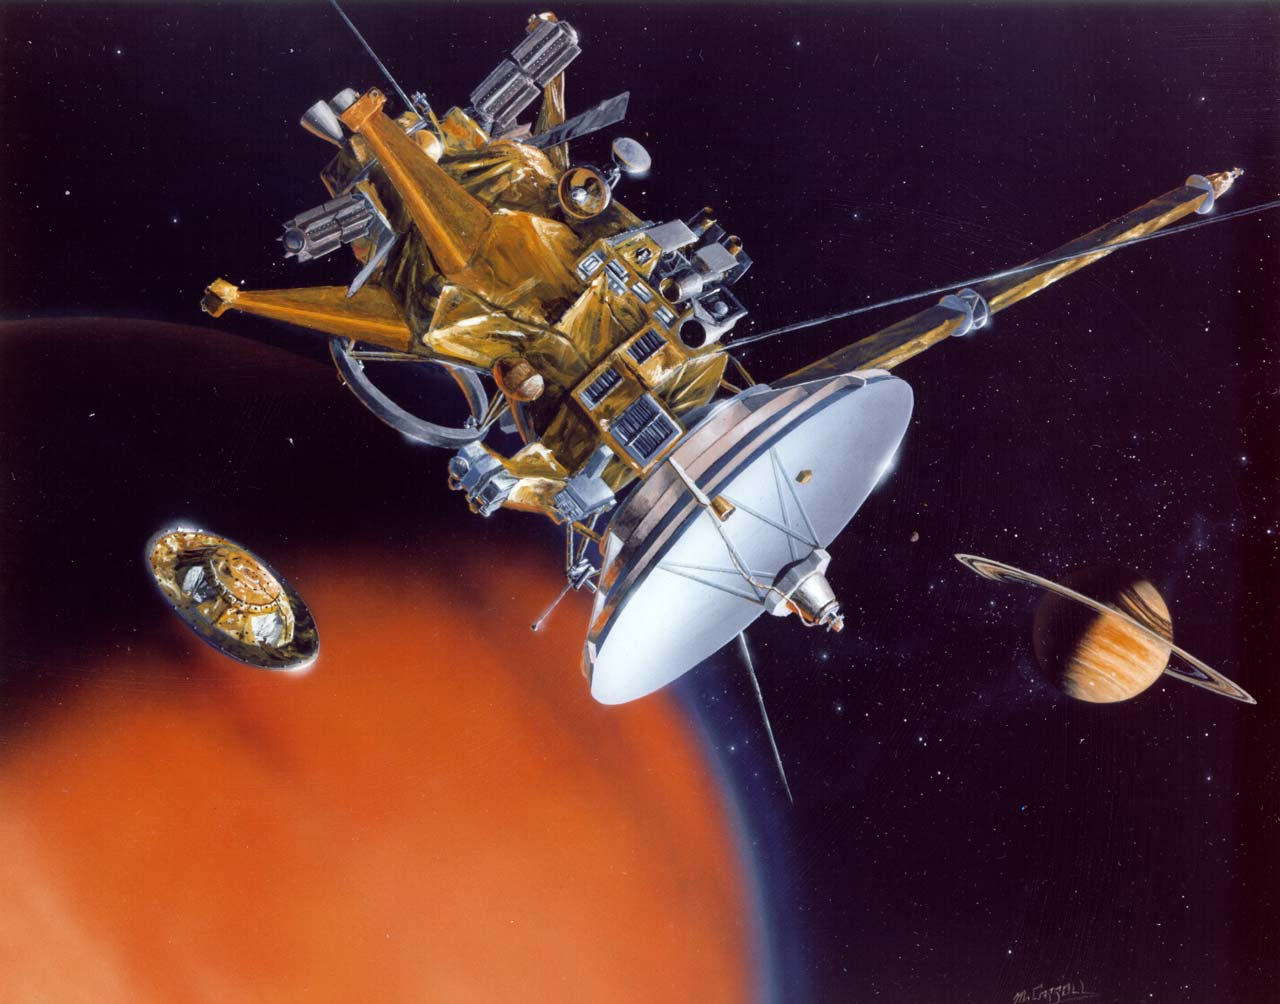 from saturn huygens probe pictures - photo #8